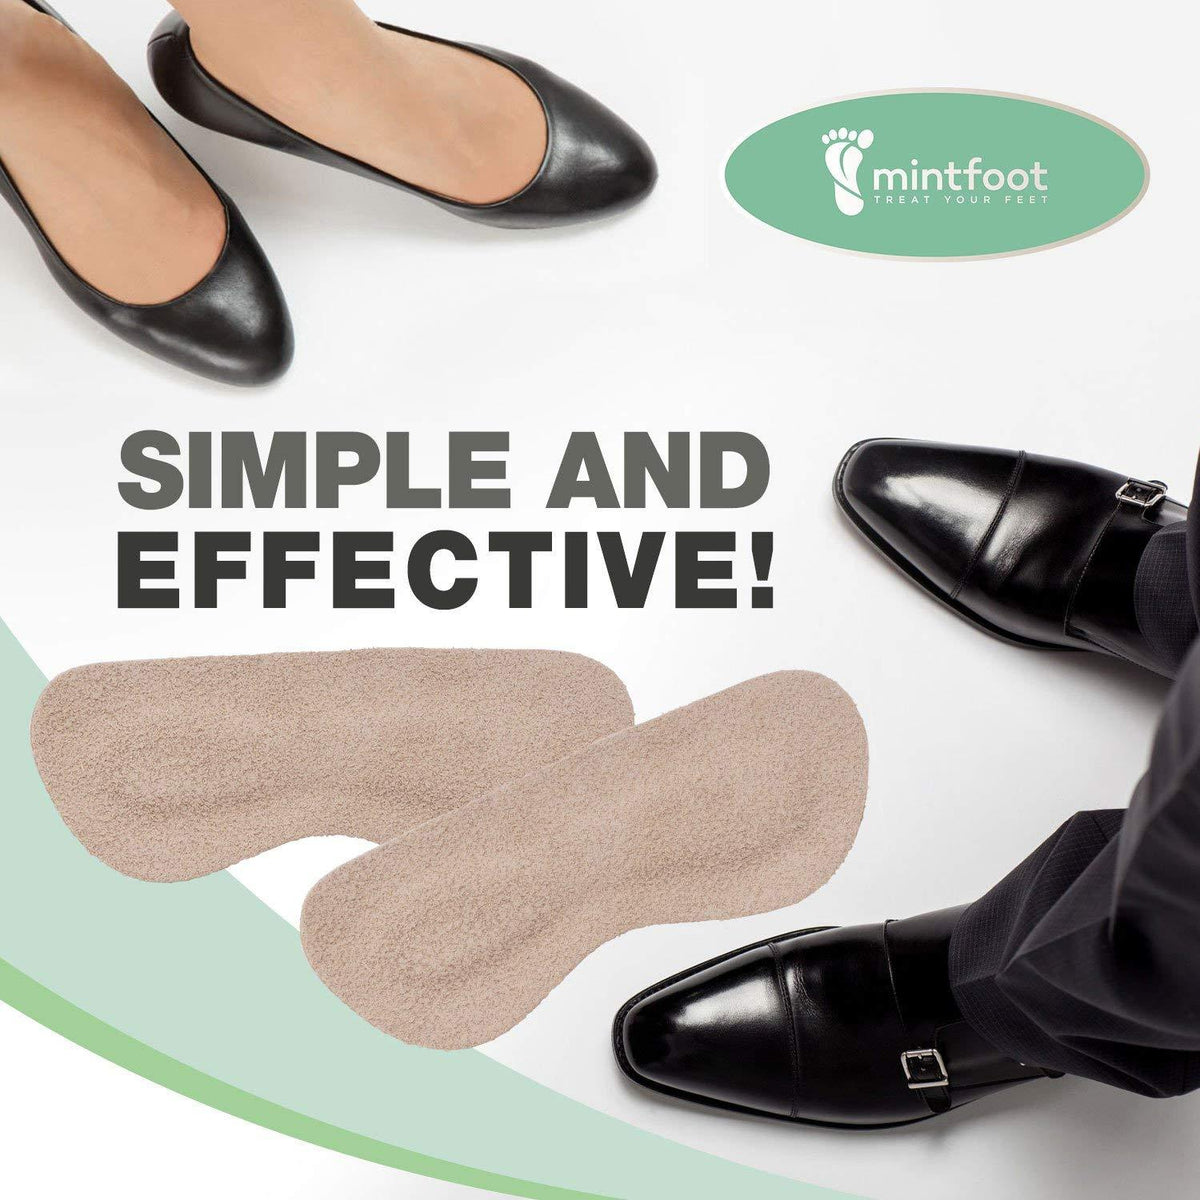 Mintfoot Leather Heel Grips -- 10 Pieces - for Loose Fitting Shoes, Heel Protection, and Blisters Foot Pain Dr. Frederick's Original